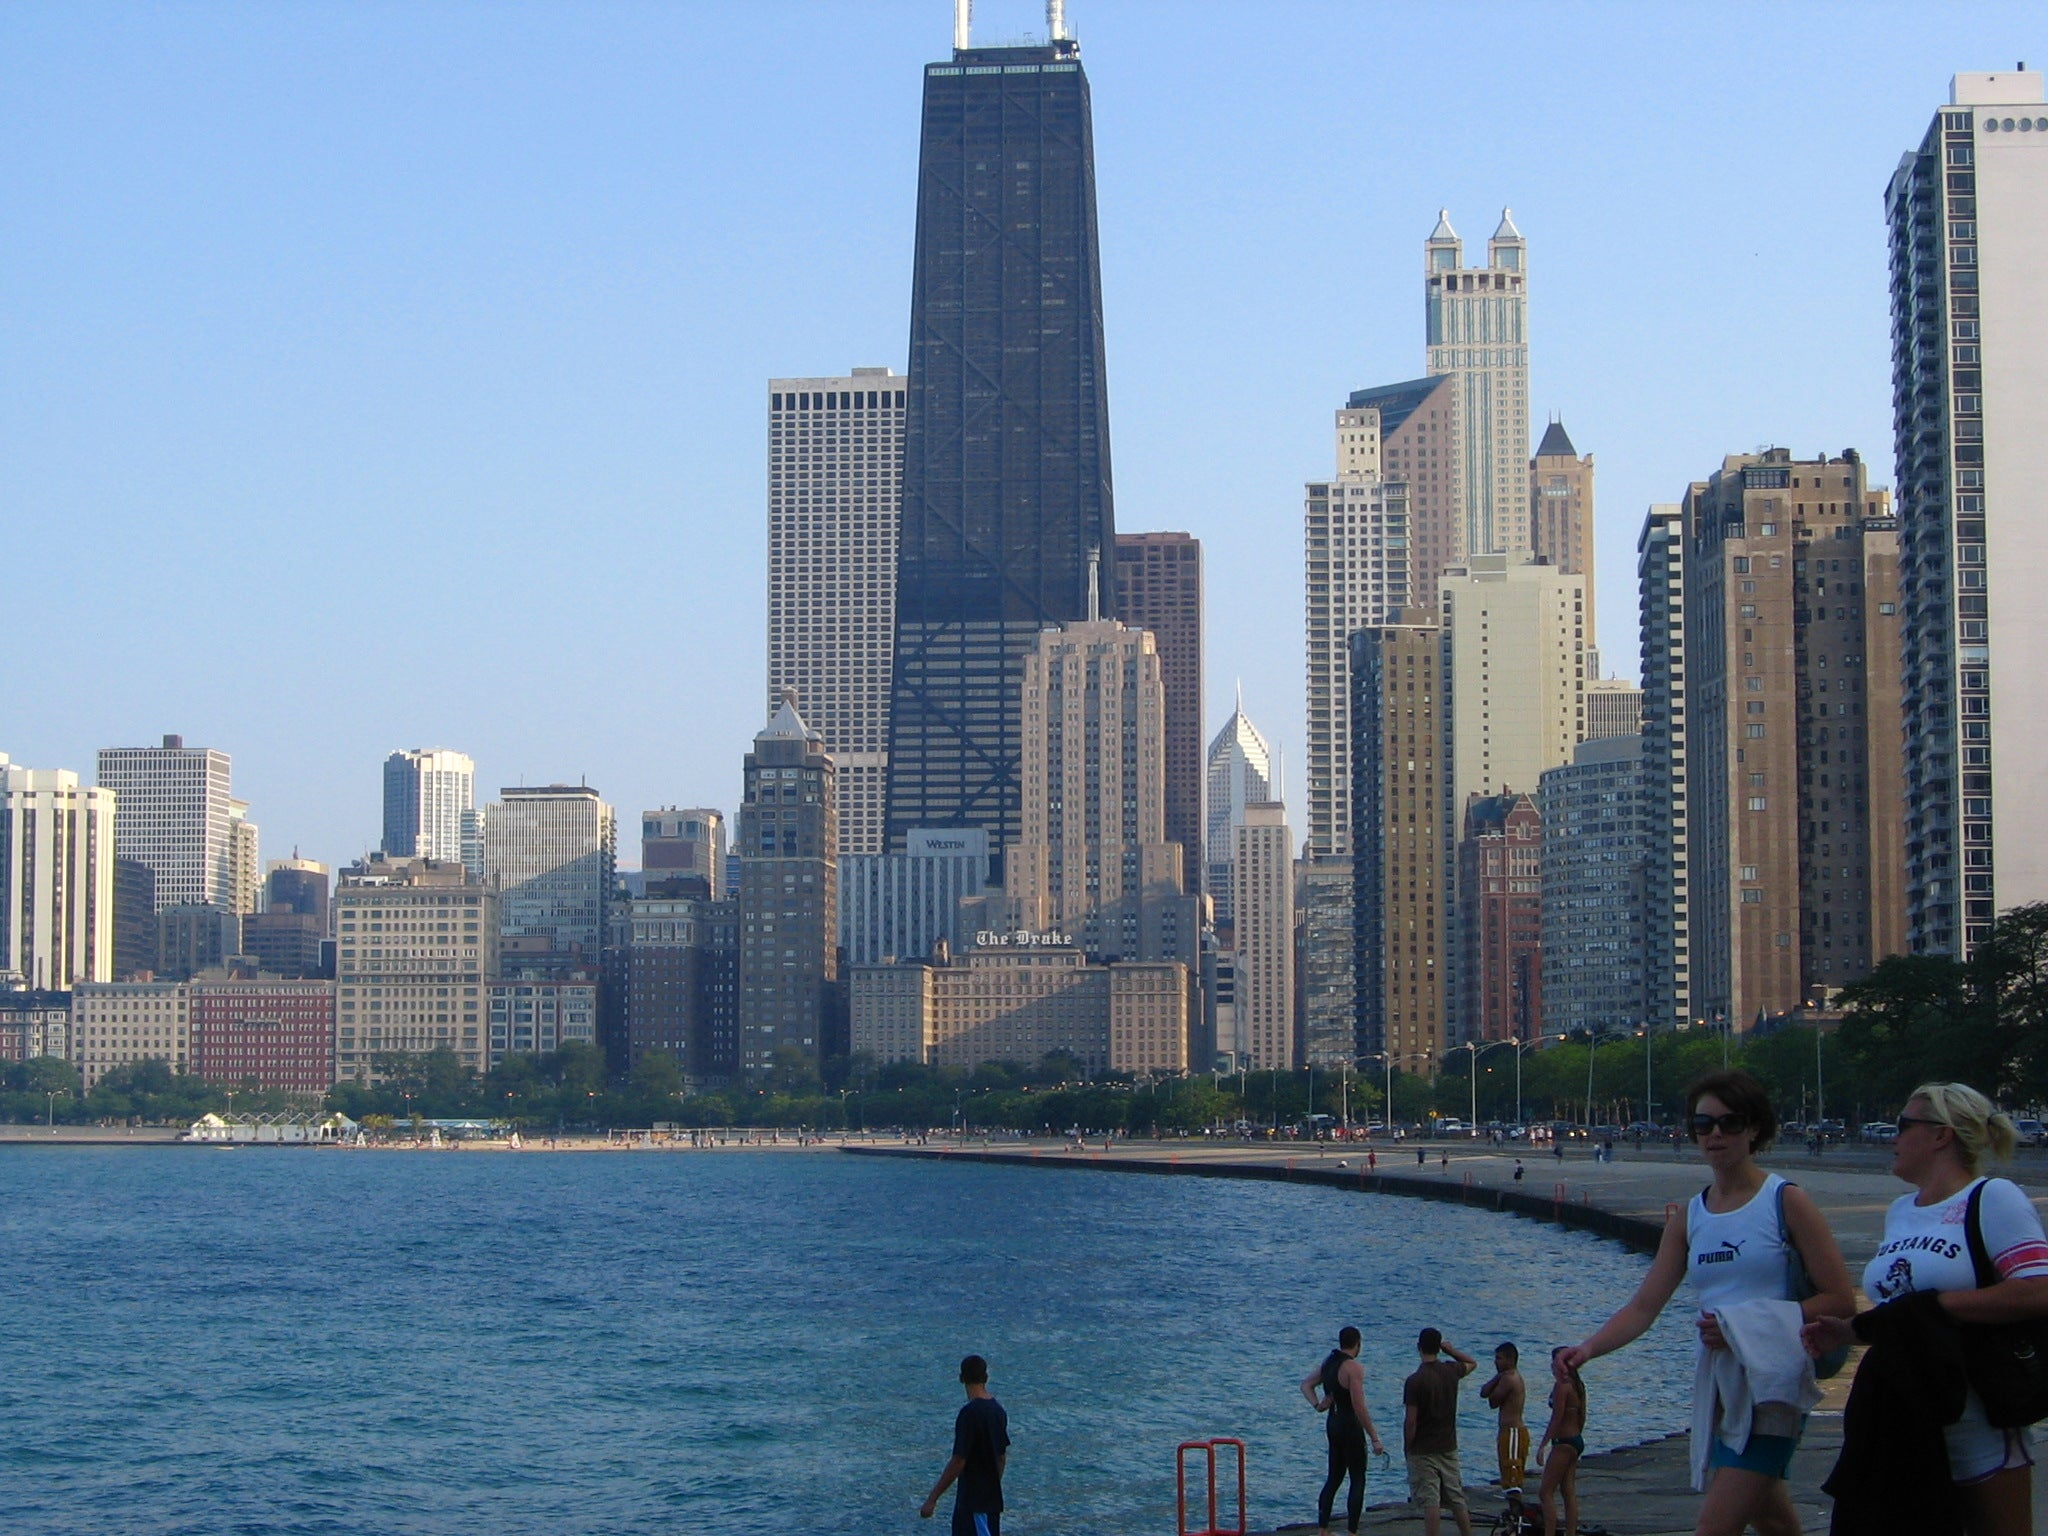 Las playas de Chicago